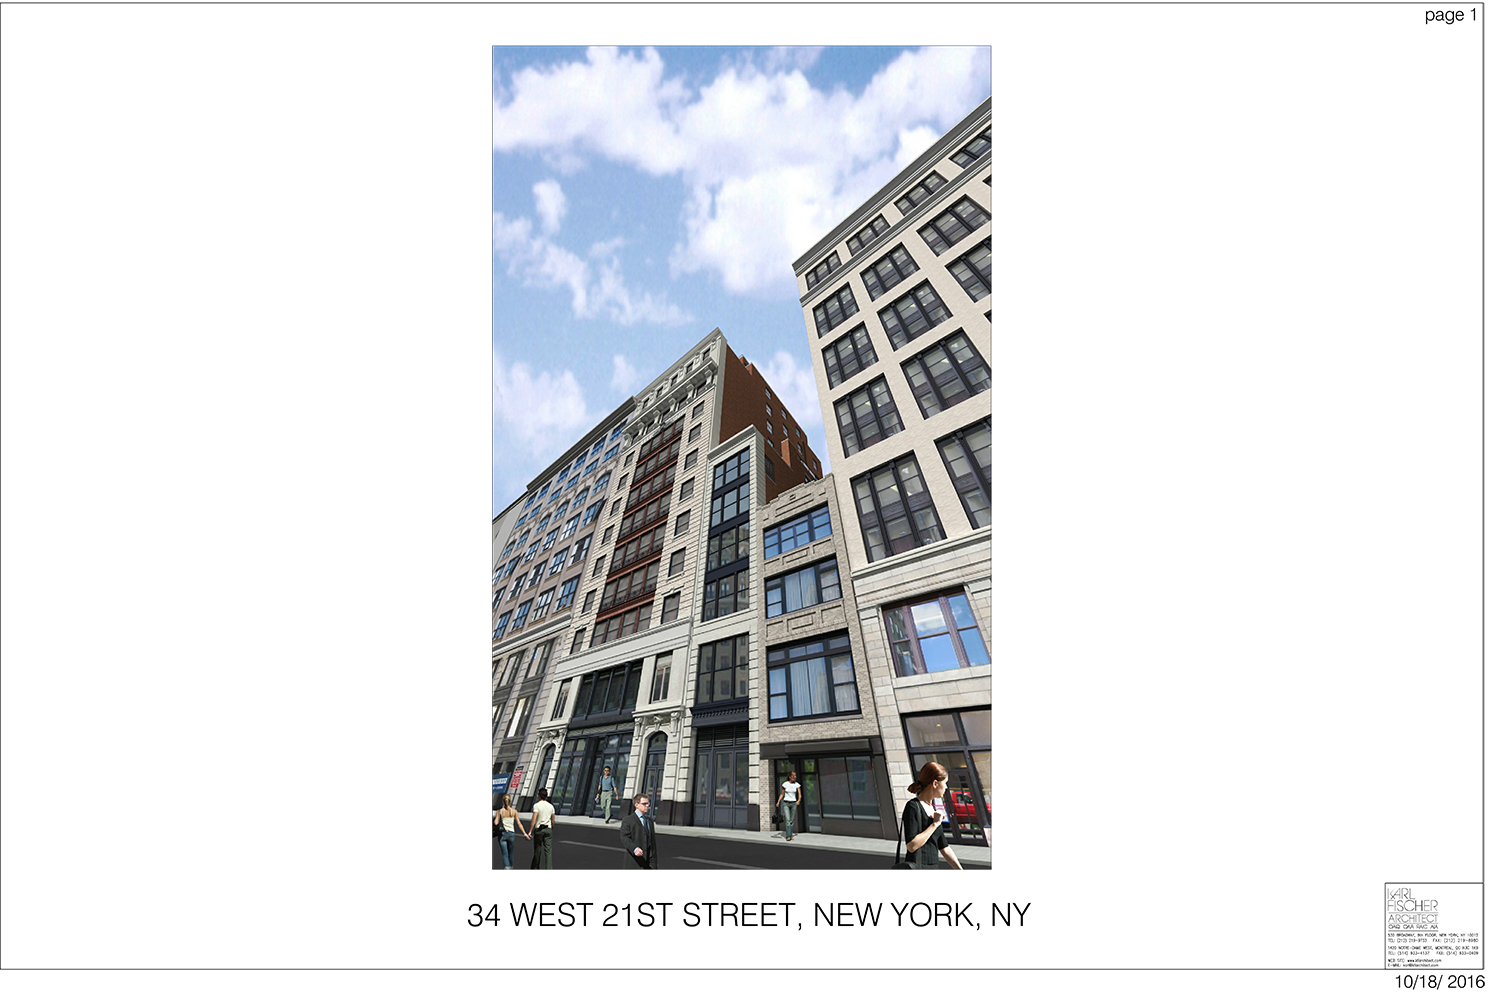 34West21stStreet_20161101_01